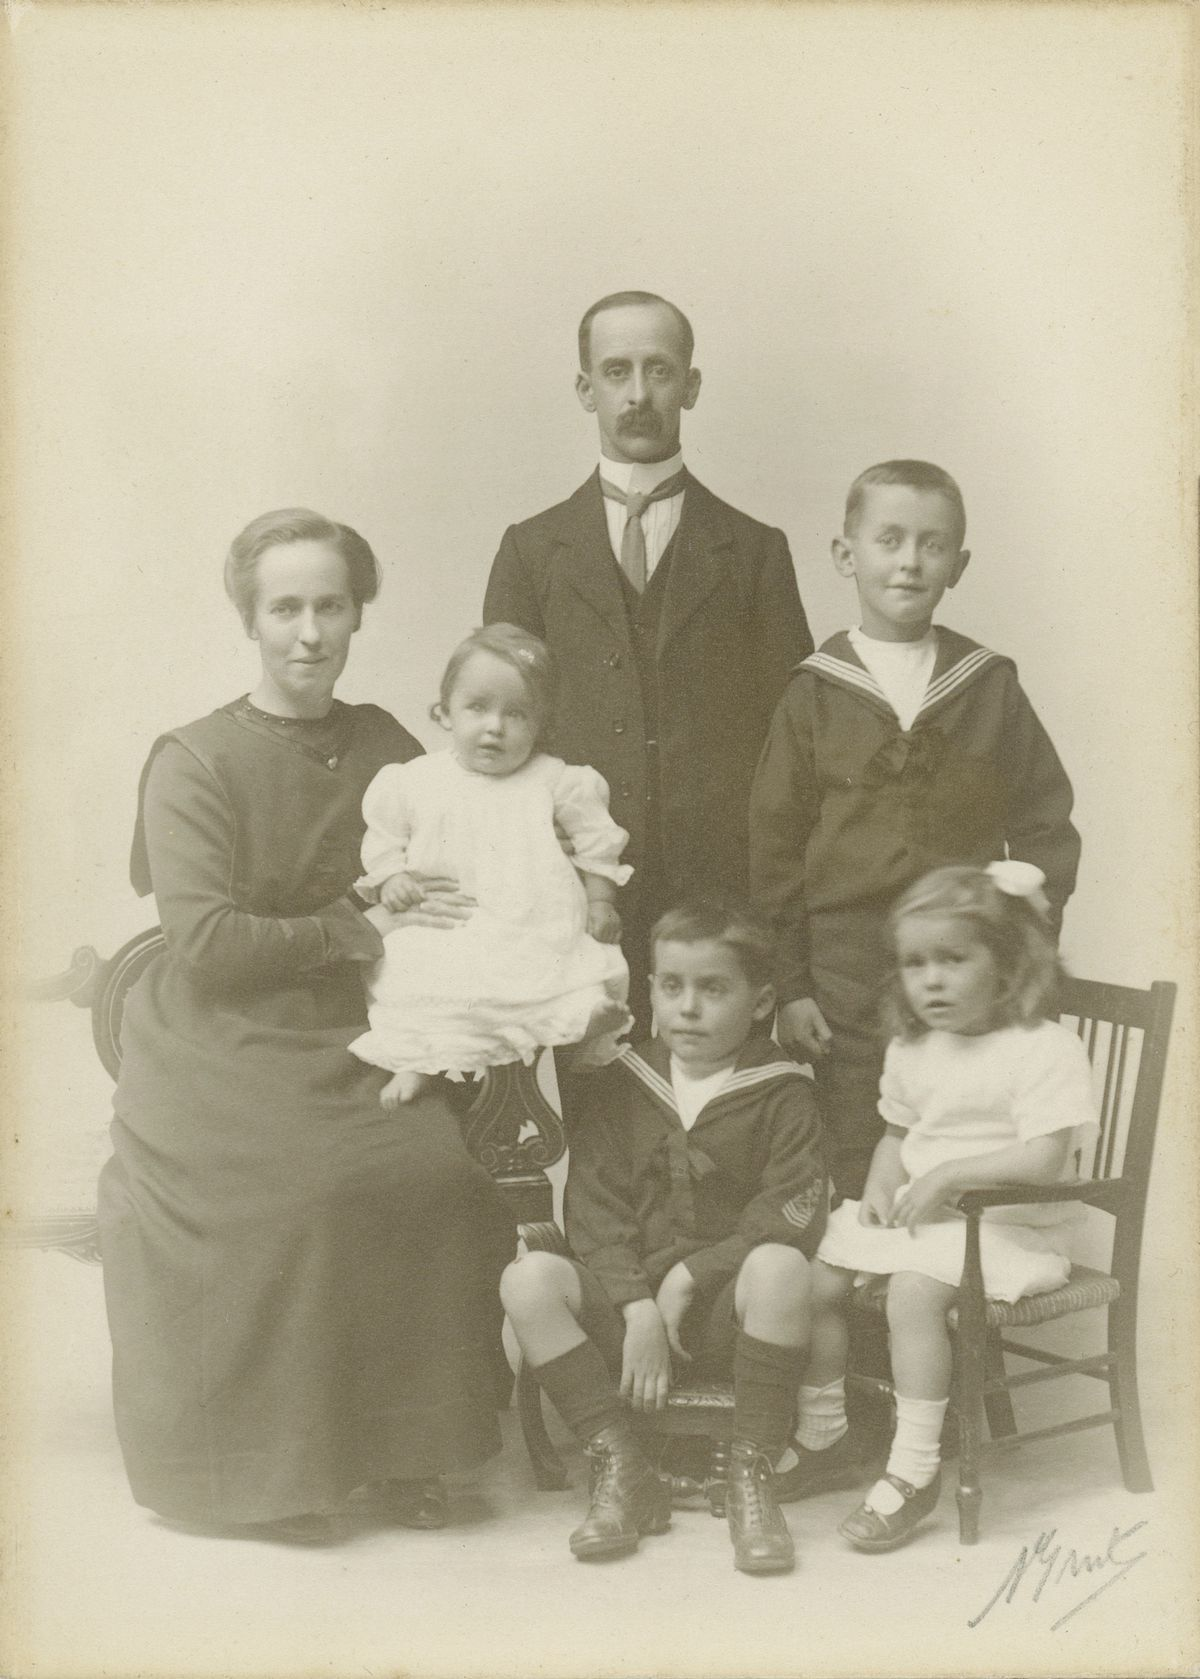 Collas Family, 1919: John William Collas (standing), left to right: Mary Alice Collas (née Bichard), Peter Renouf Collas, Edward Domaille Collas, John Peter Collas (standing), Marion Bichard Collas. (Picture courtesy of the Collas family) (29956869)